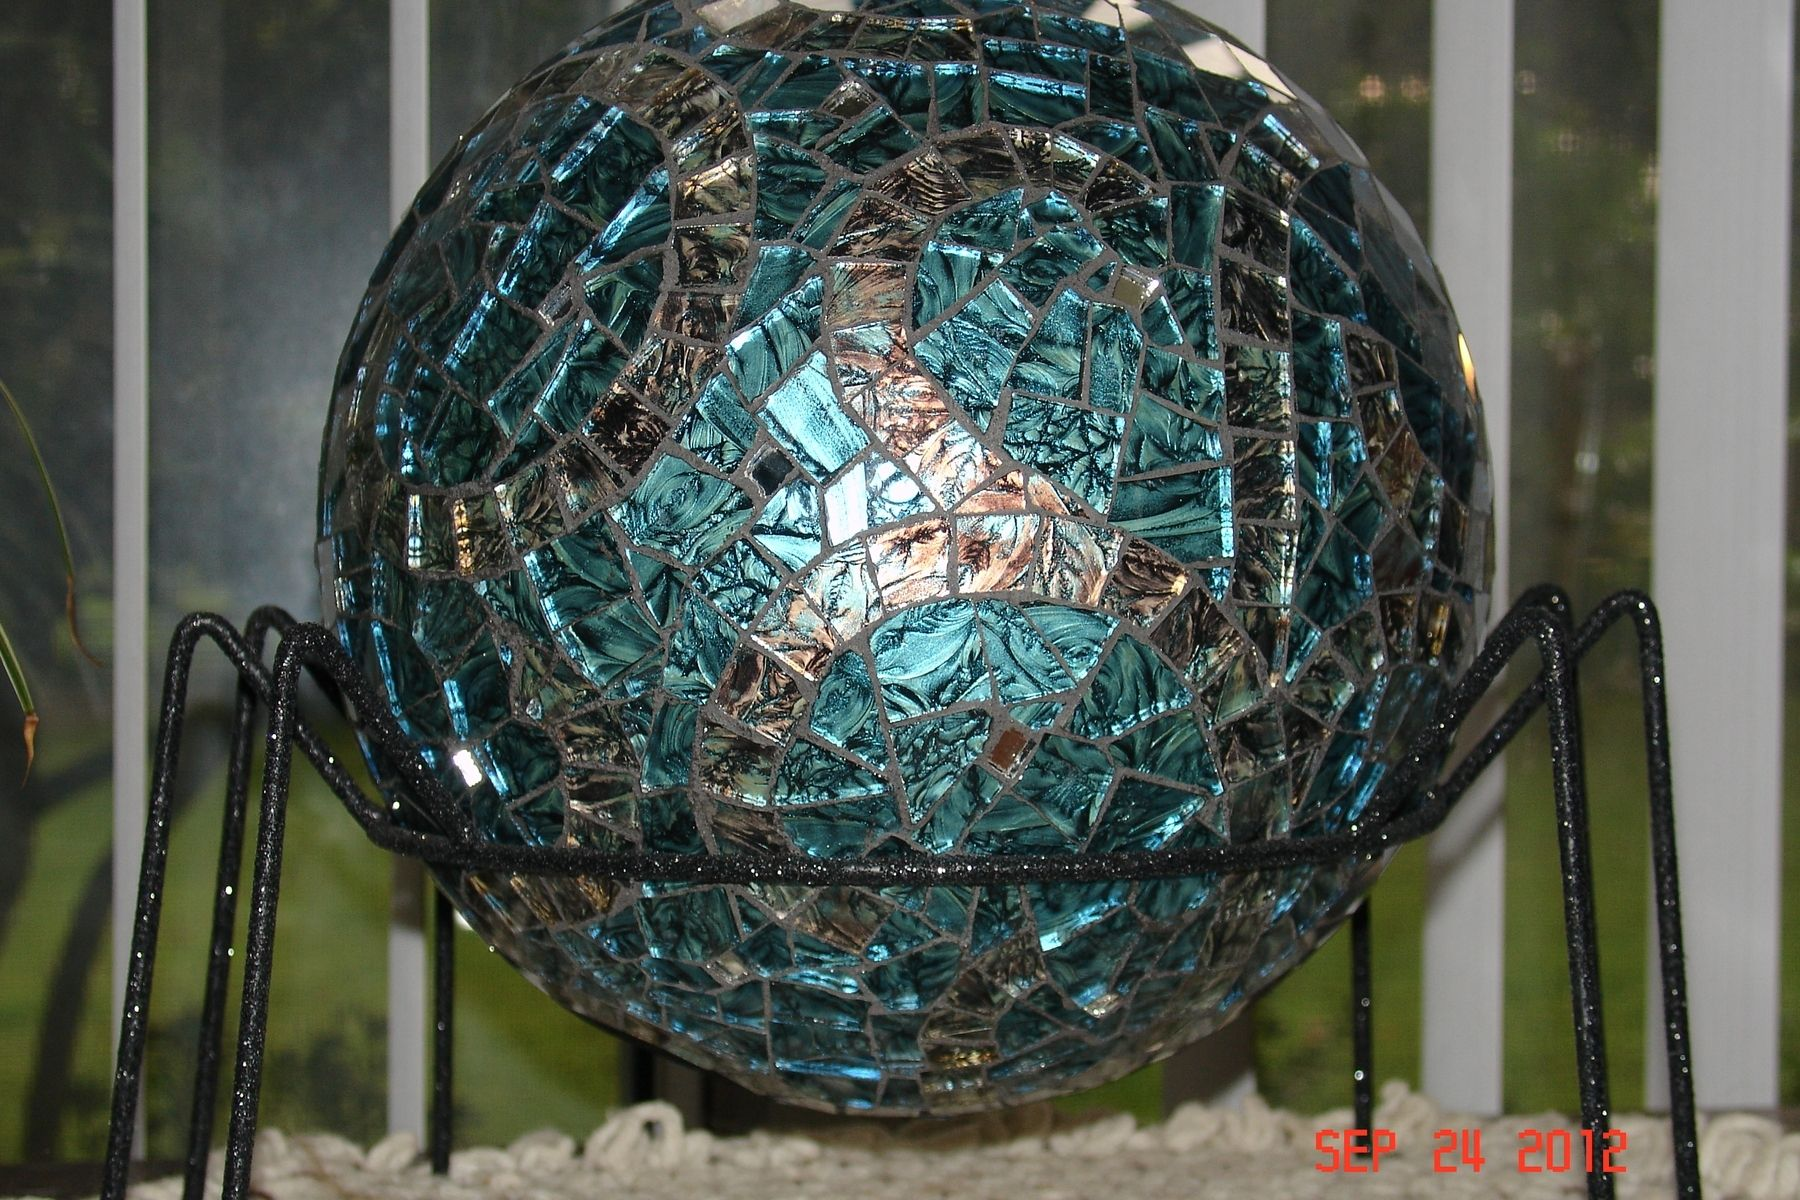 Mid Century Modern Patio Hand Made Van Gogh Stained Glass Mosaic Gazing Ball Made